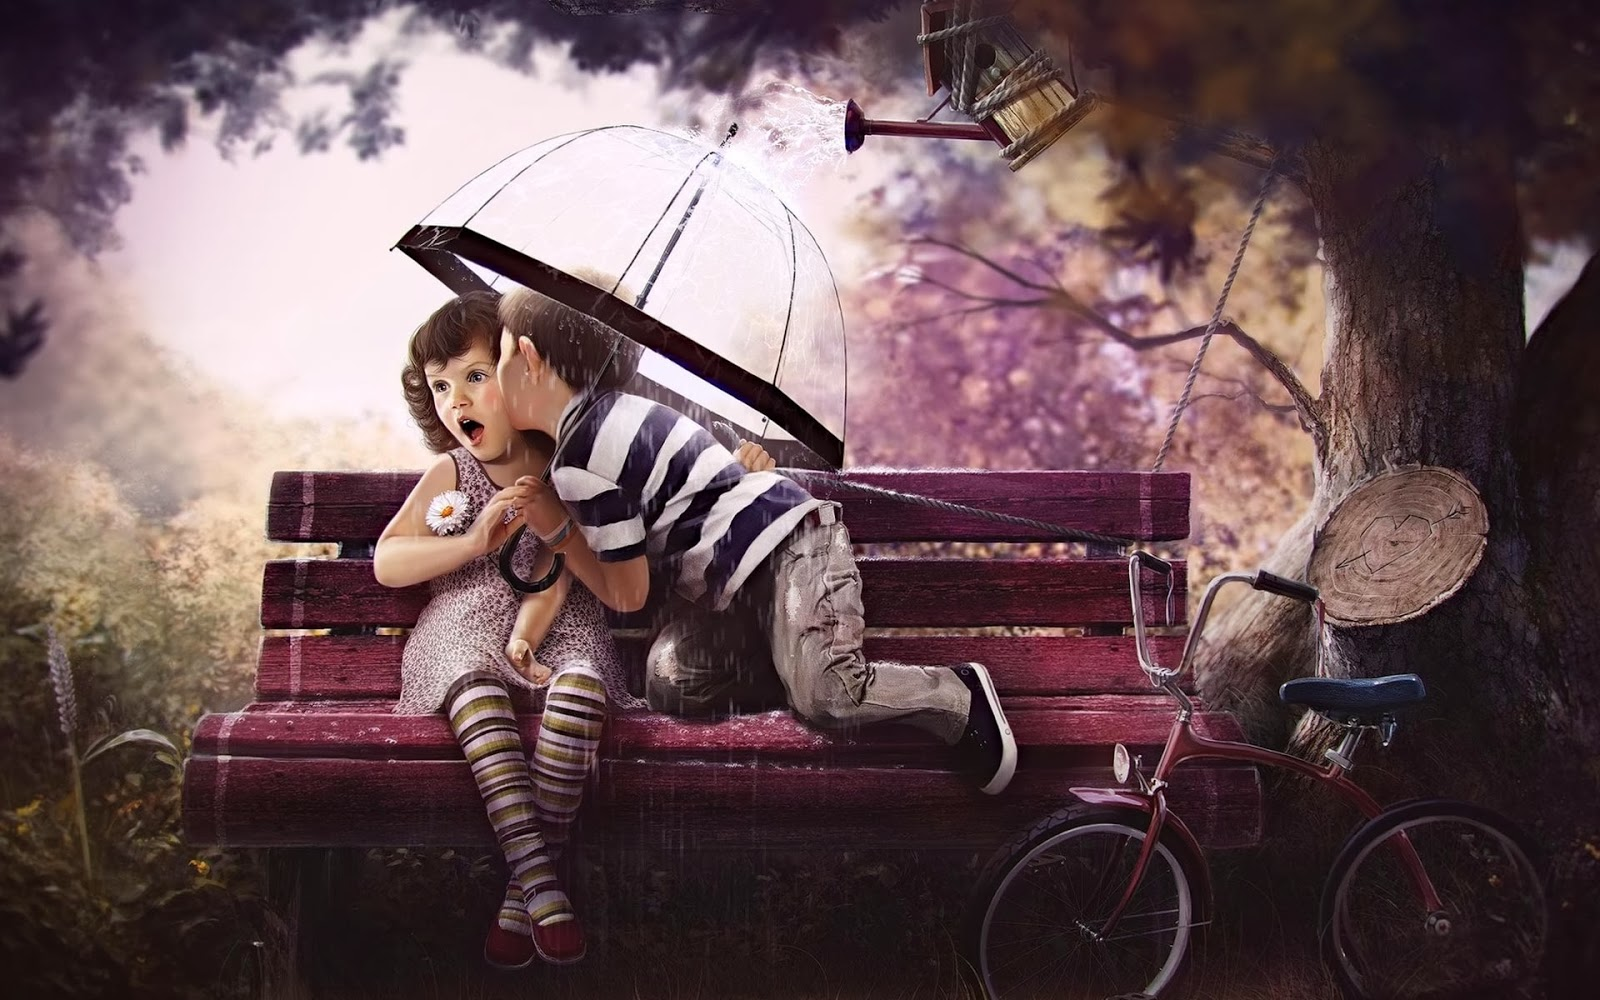 Simple Love Couple Cartoon HD Wallpaper Download - cute-lover-boy-kiss-girl-cartoon-images-card-template  Perfect Image Reference_21821.jpg